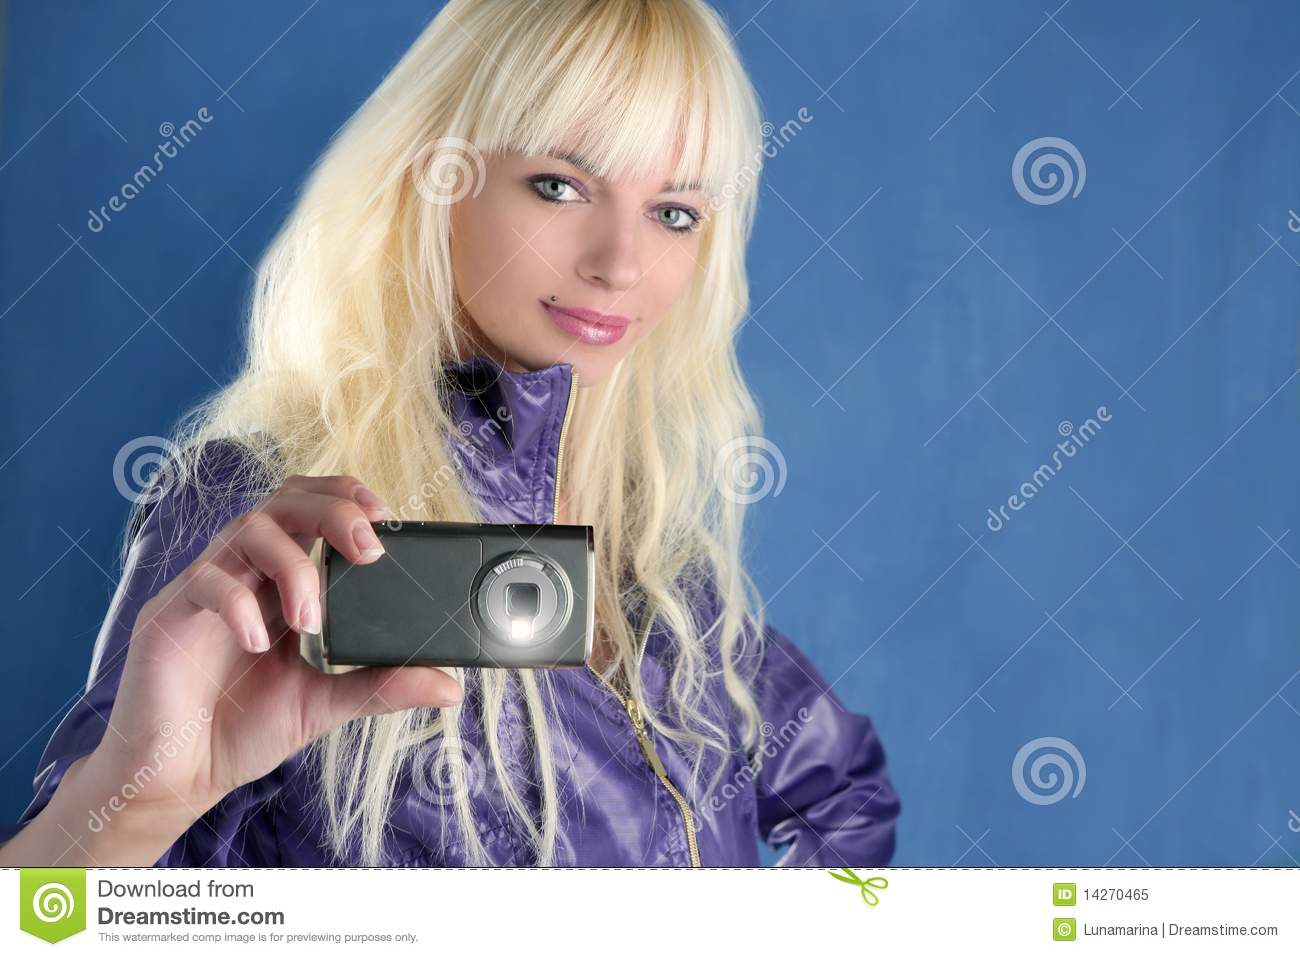 Blonde fucked on cell phone cam